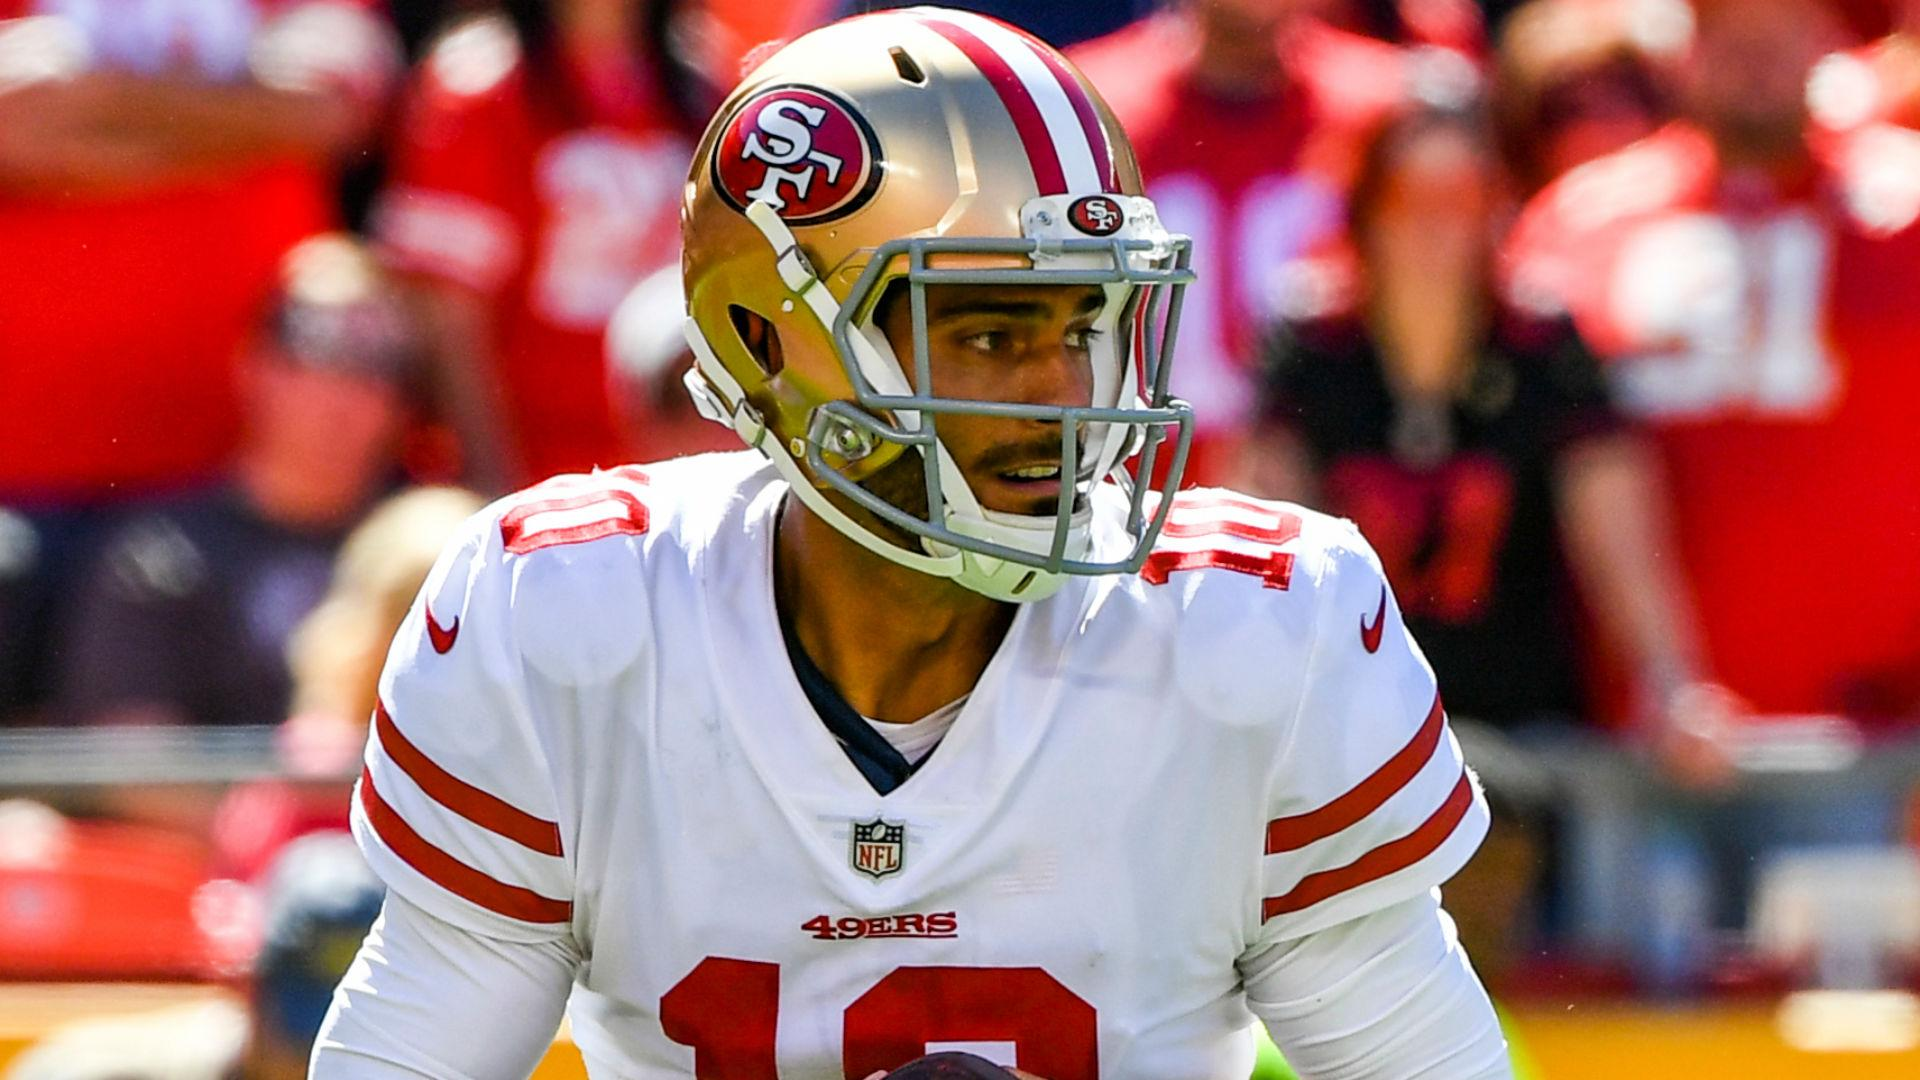 cc3ae7e0 49ers QB Garoppolo 'moving in the right direction'